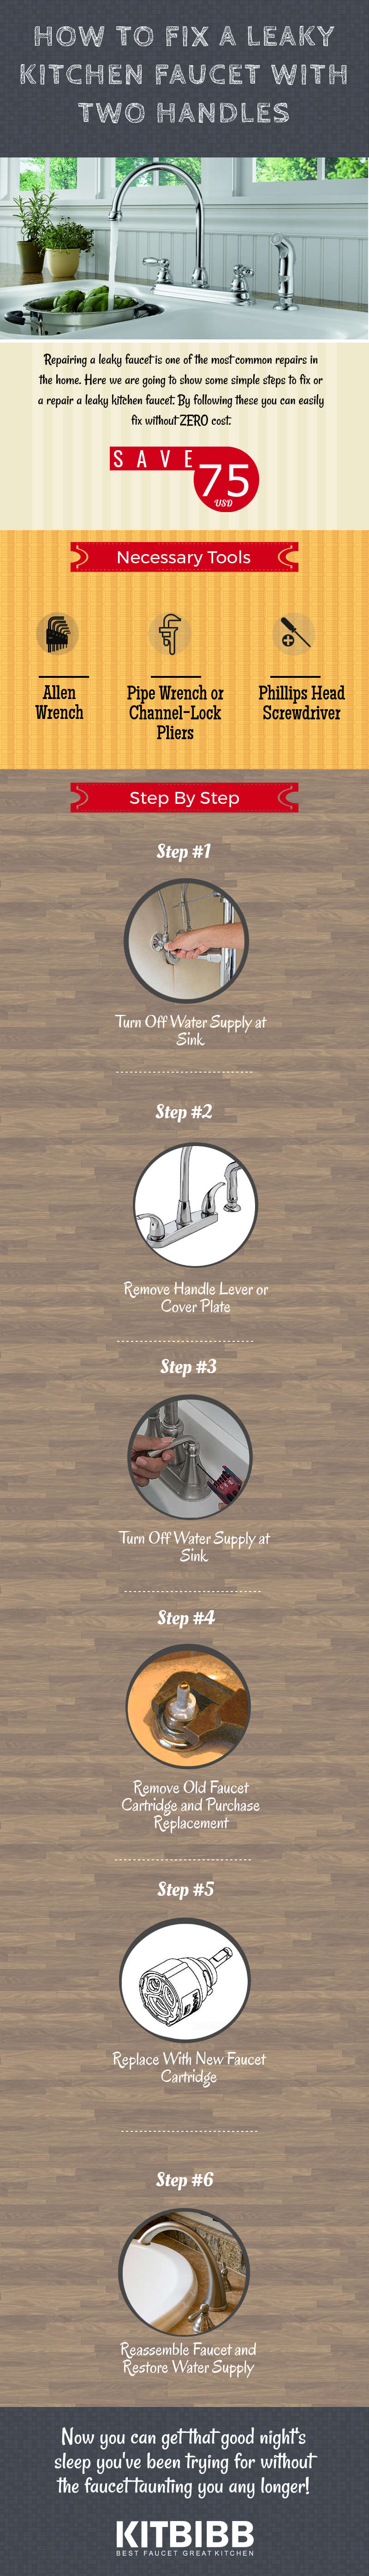 How To Fix A Leaky Kitchen Faucet With Two Handles Step By